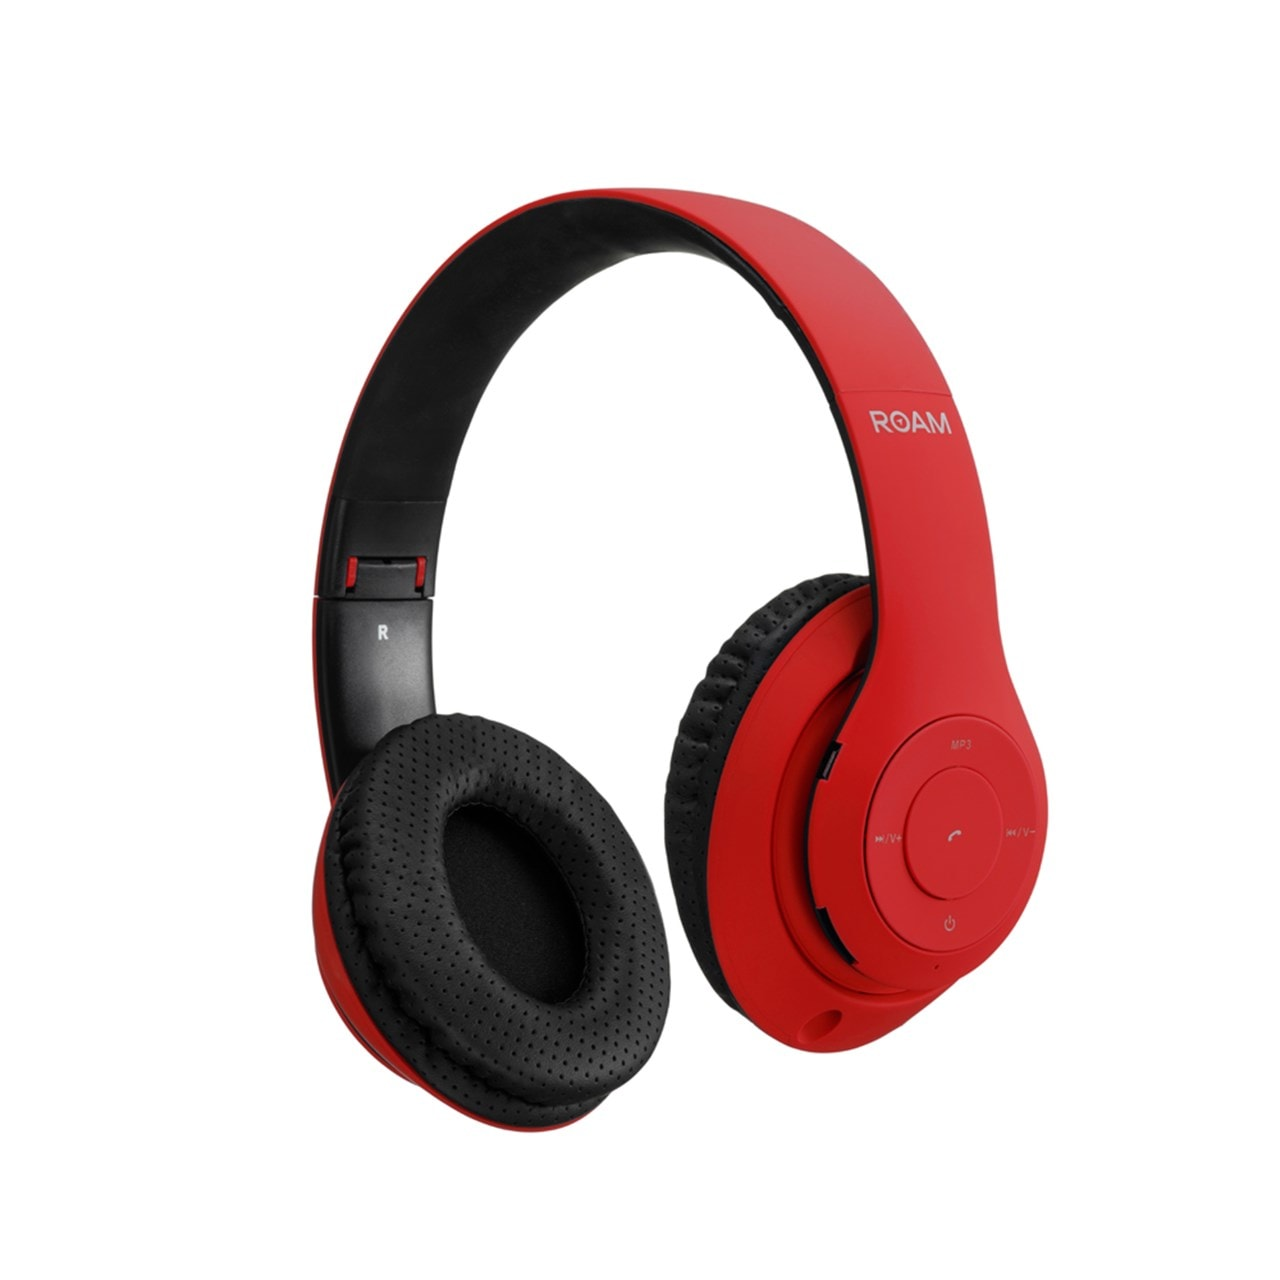 Roam Colours Red Bluetooth Headphones (hmv Exclusive) - 1